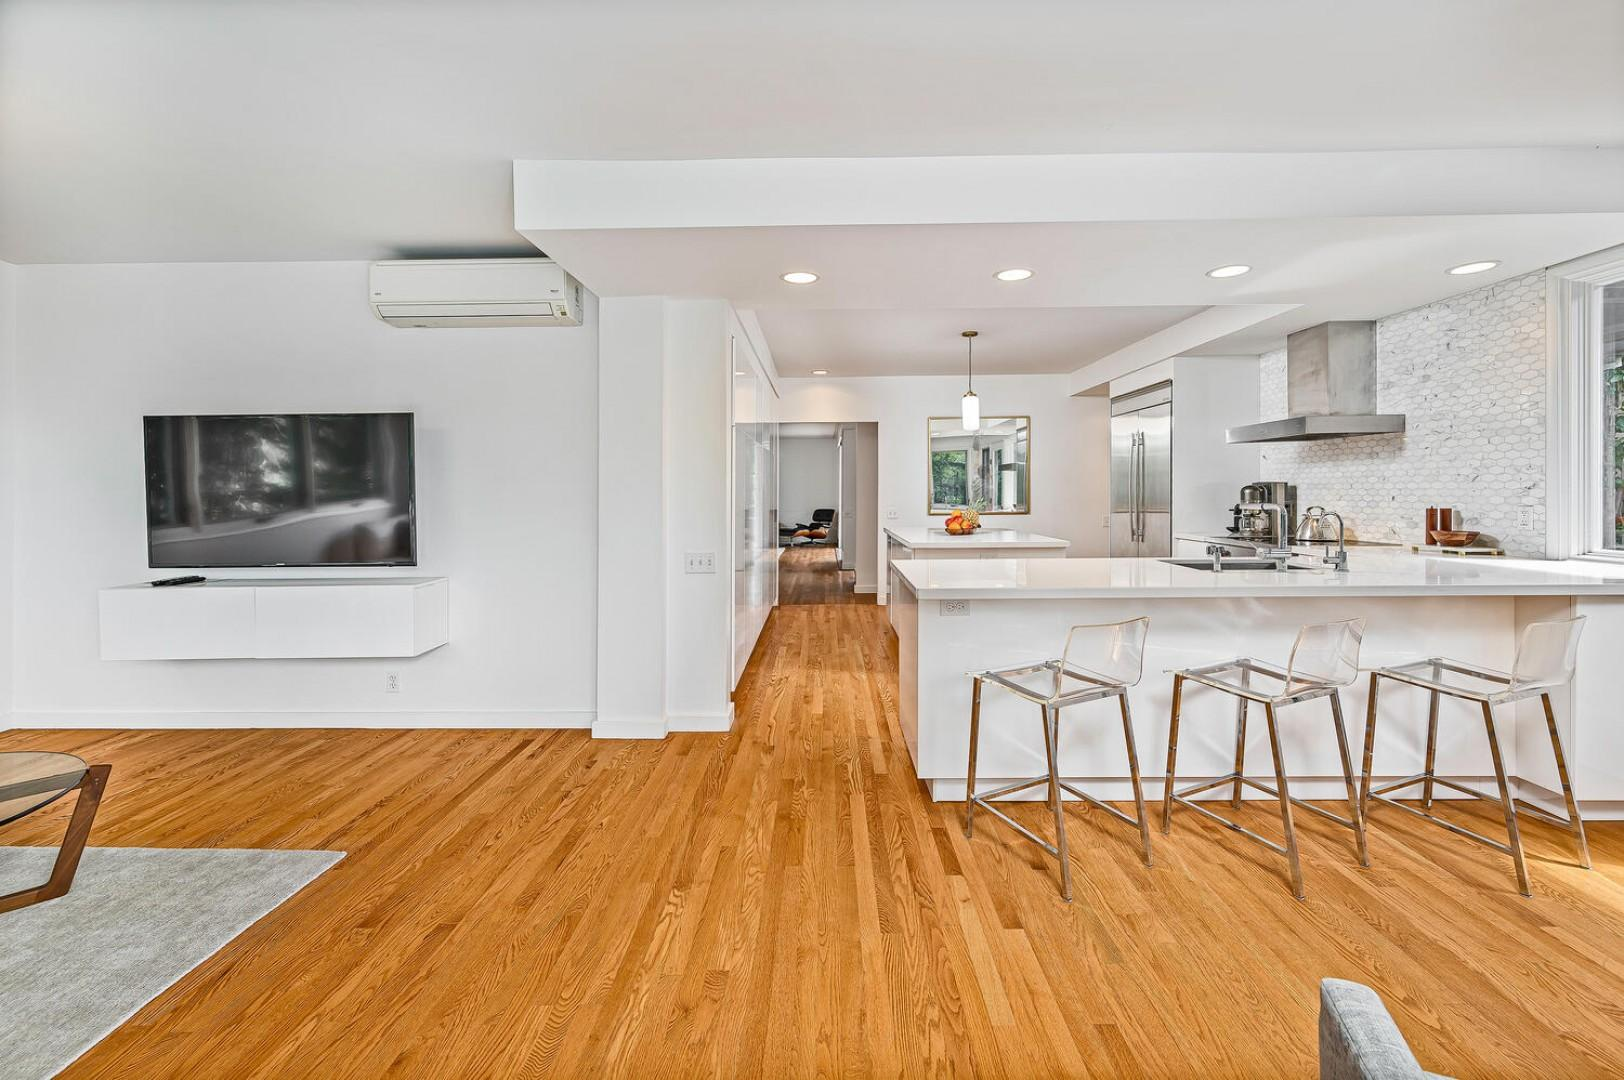 Kitchen and sitting area with smart TV